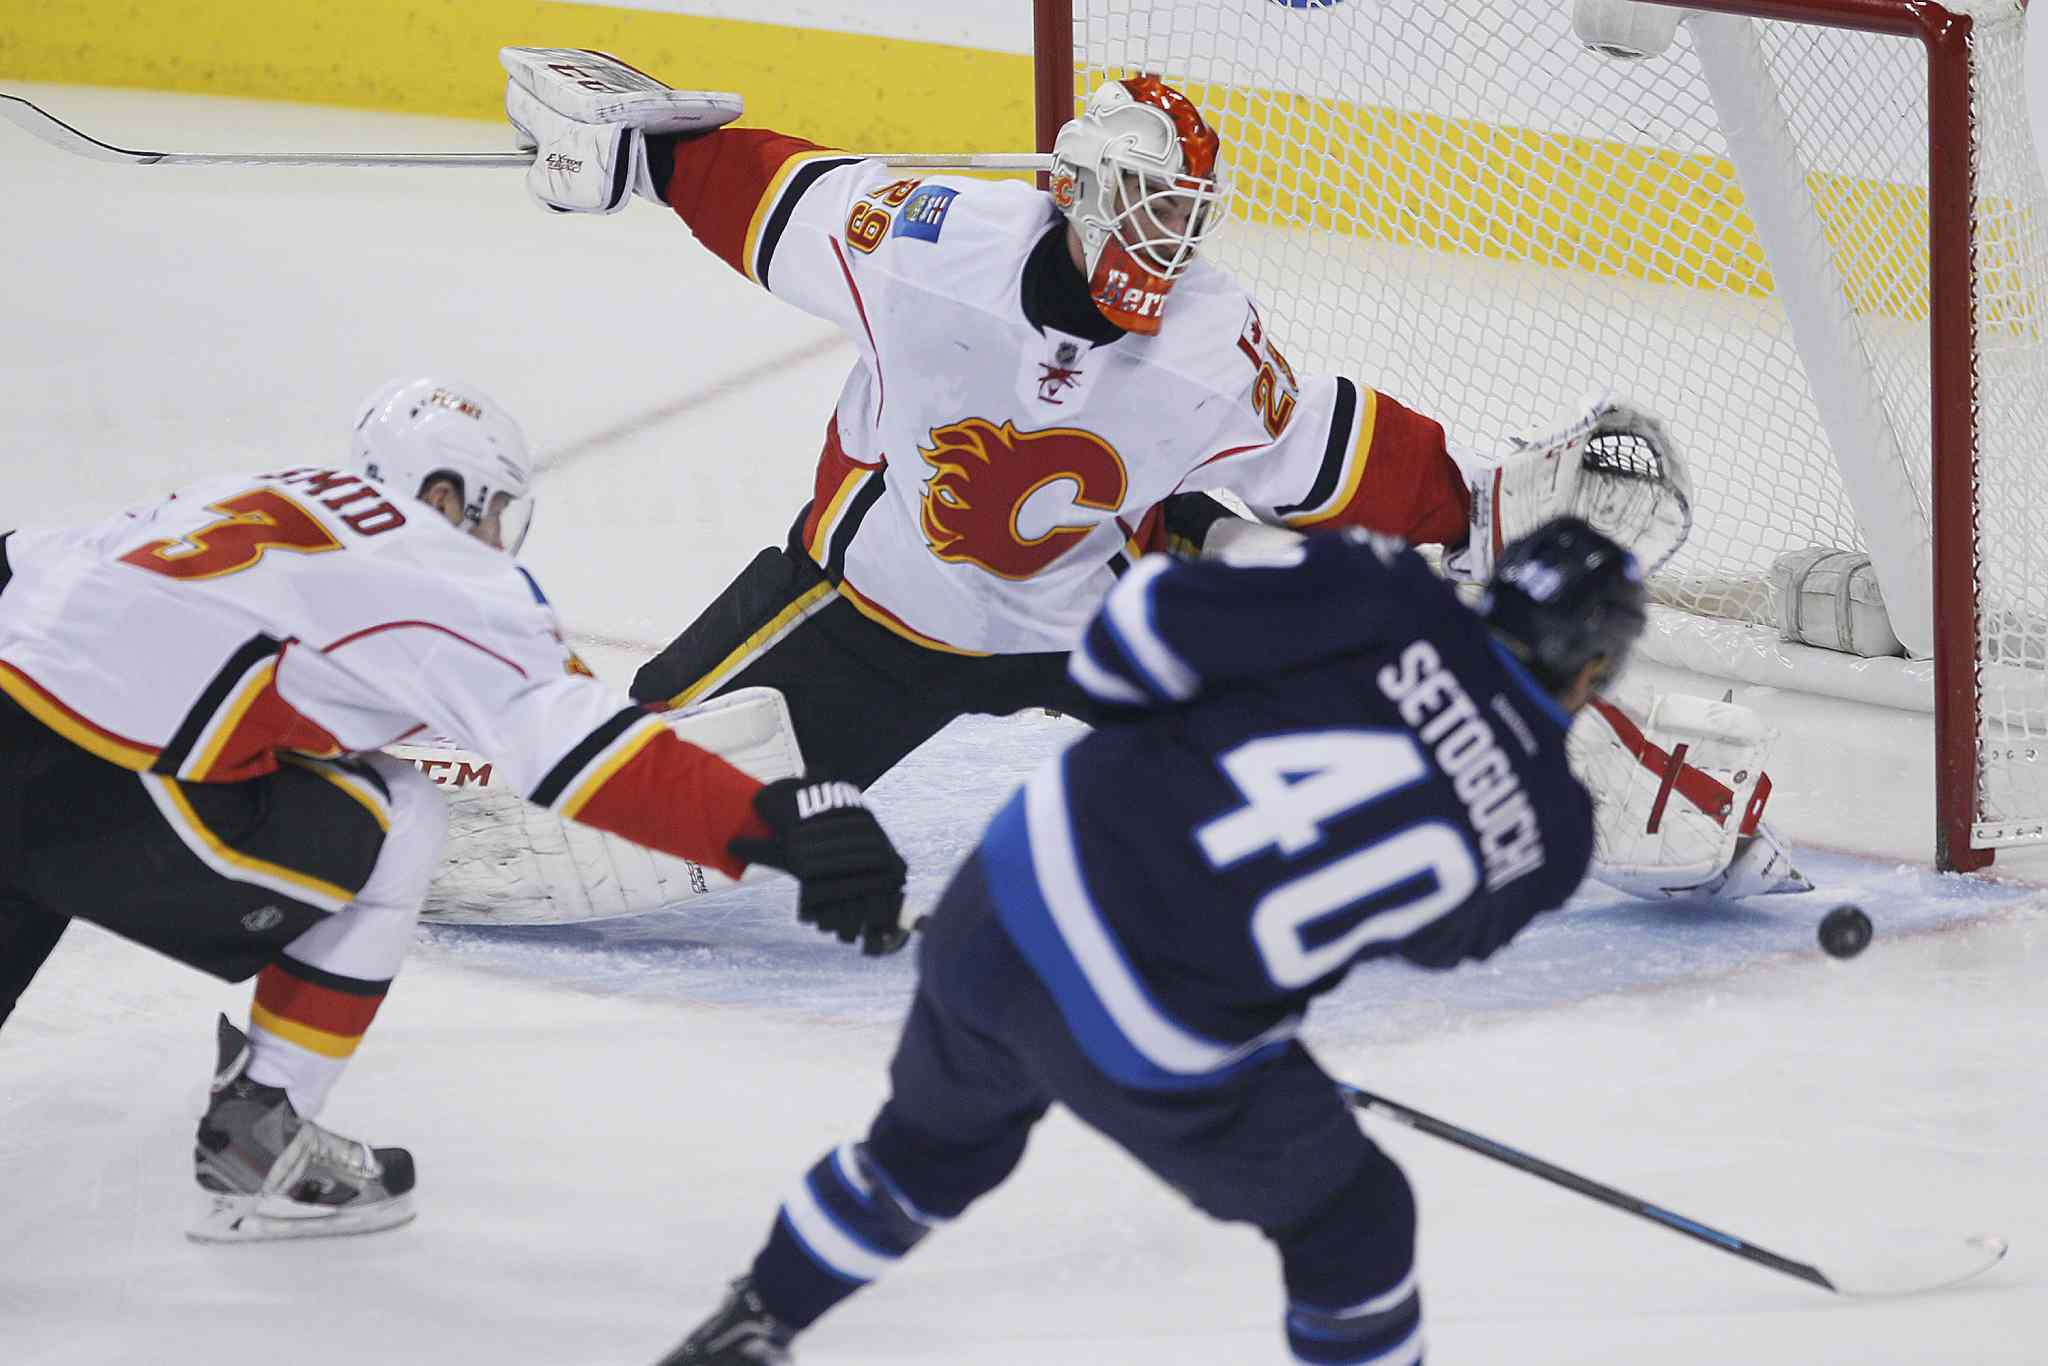 Calgary Flames' goaltender Reto Berra (29) gets his toe on the shot from Winnipeg Jets' Devin Setoguchi (40) as Flames' Ladislav Smid (3) attempts to knock the puck away during first period NHL action in Winnipeg on Monday, Nov. 18, 2013.